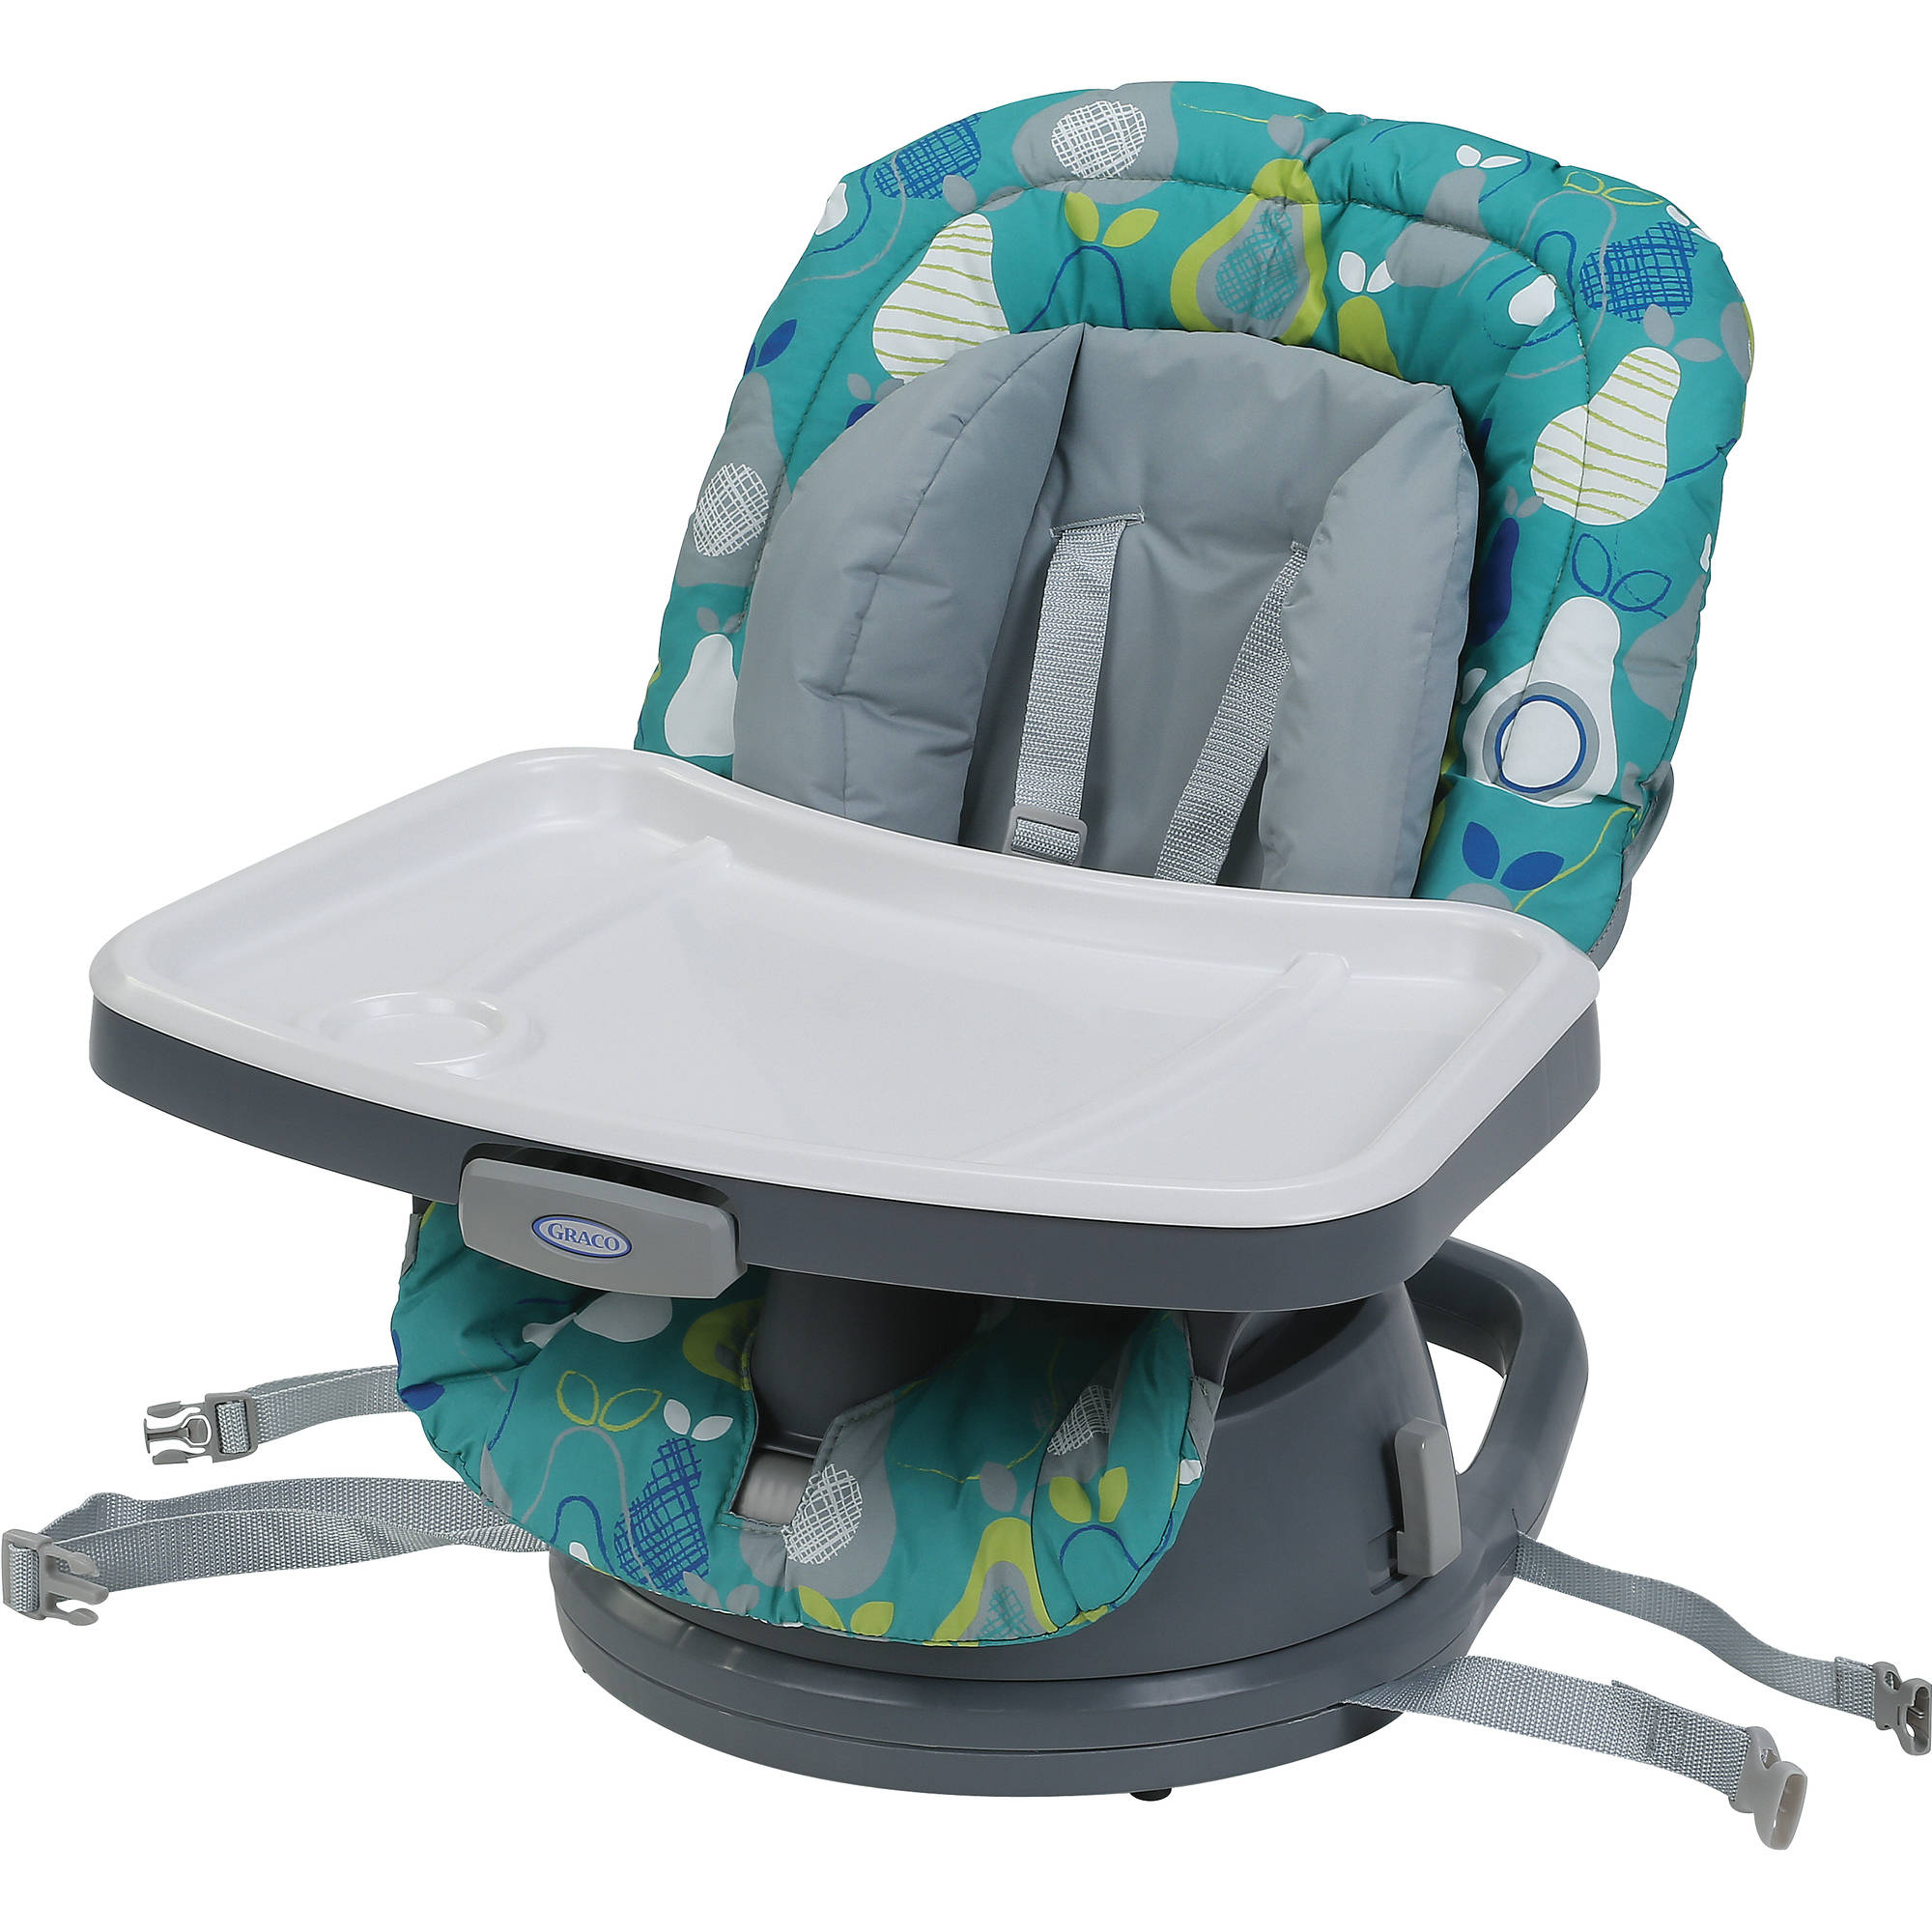 Graco SwiviSeat 3-in-1 High Chair Booster Seat, Tarte by Graco